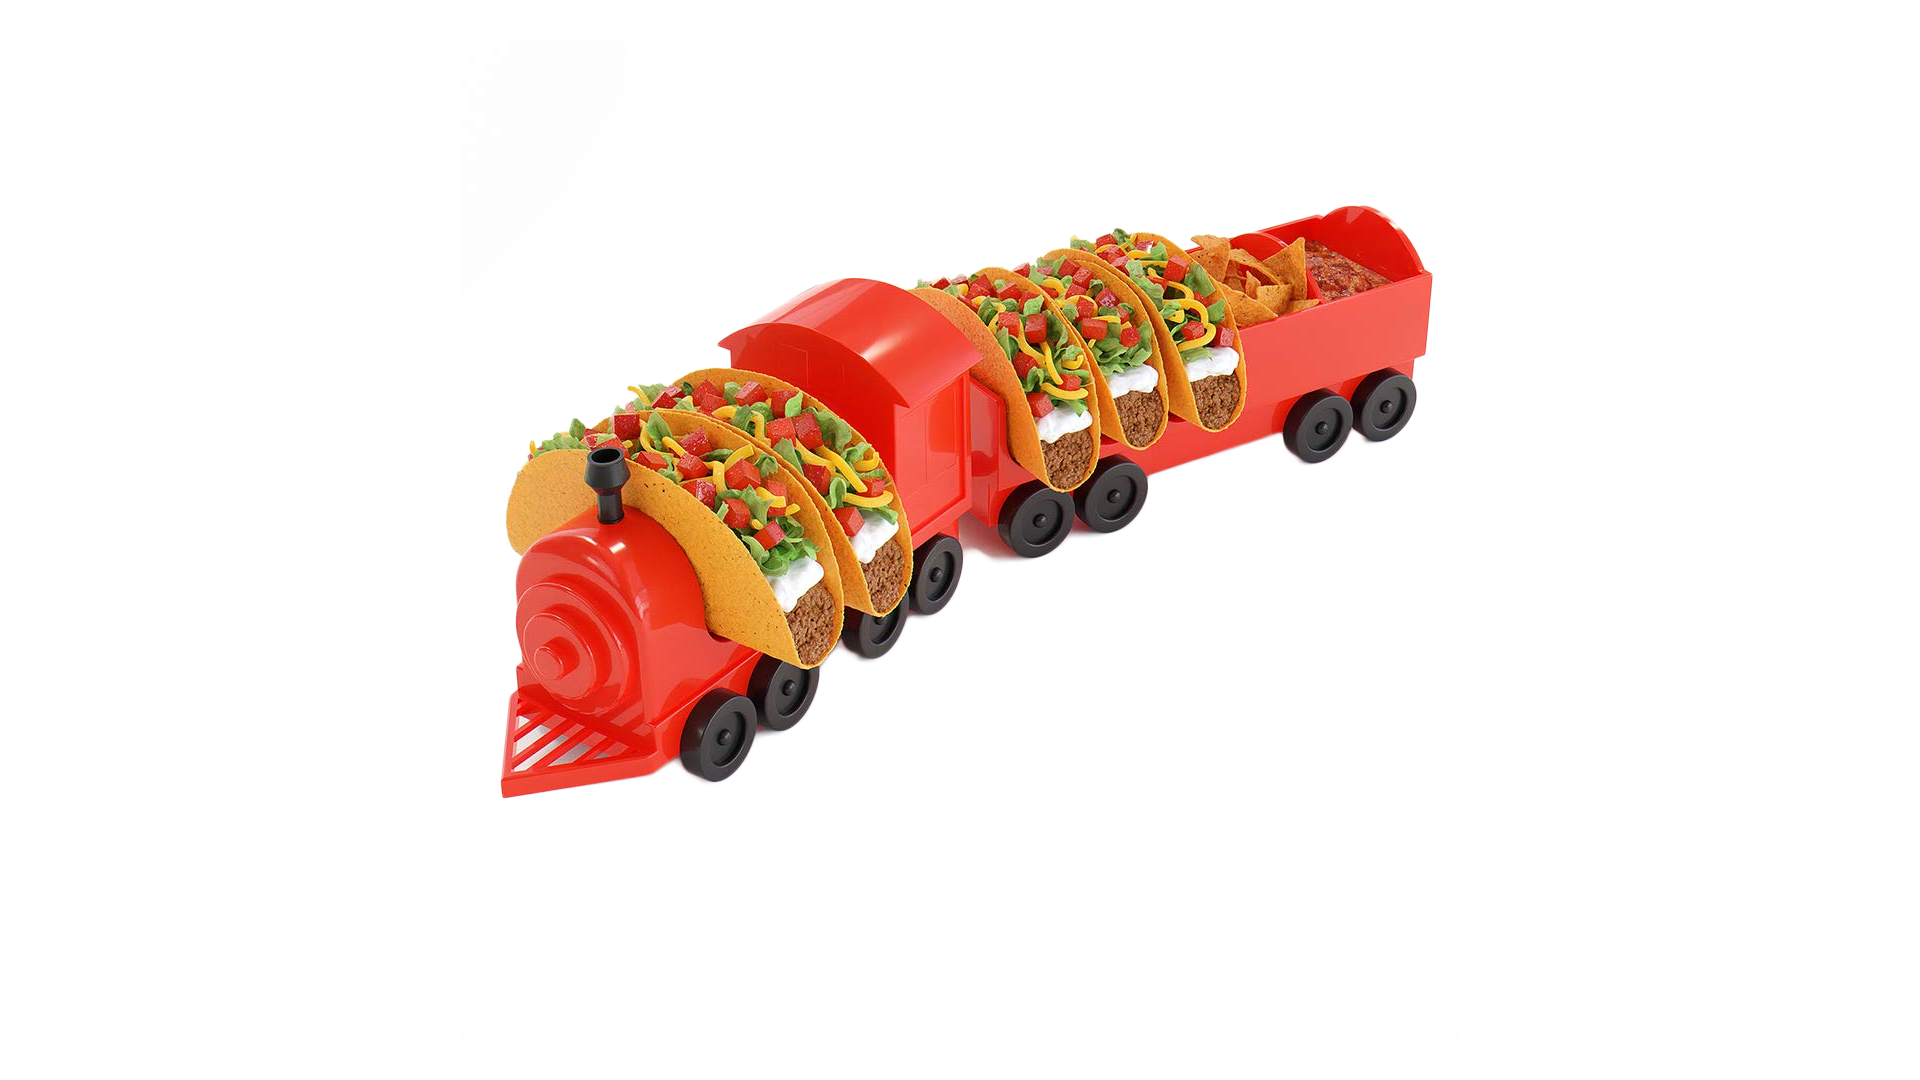 The taco train full of hard shell tacos, with chips and salsa in the caboose.